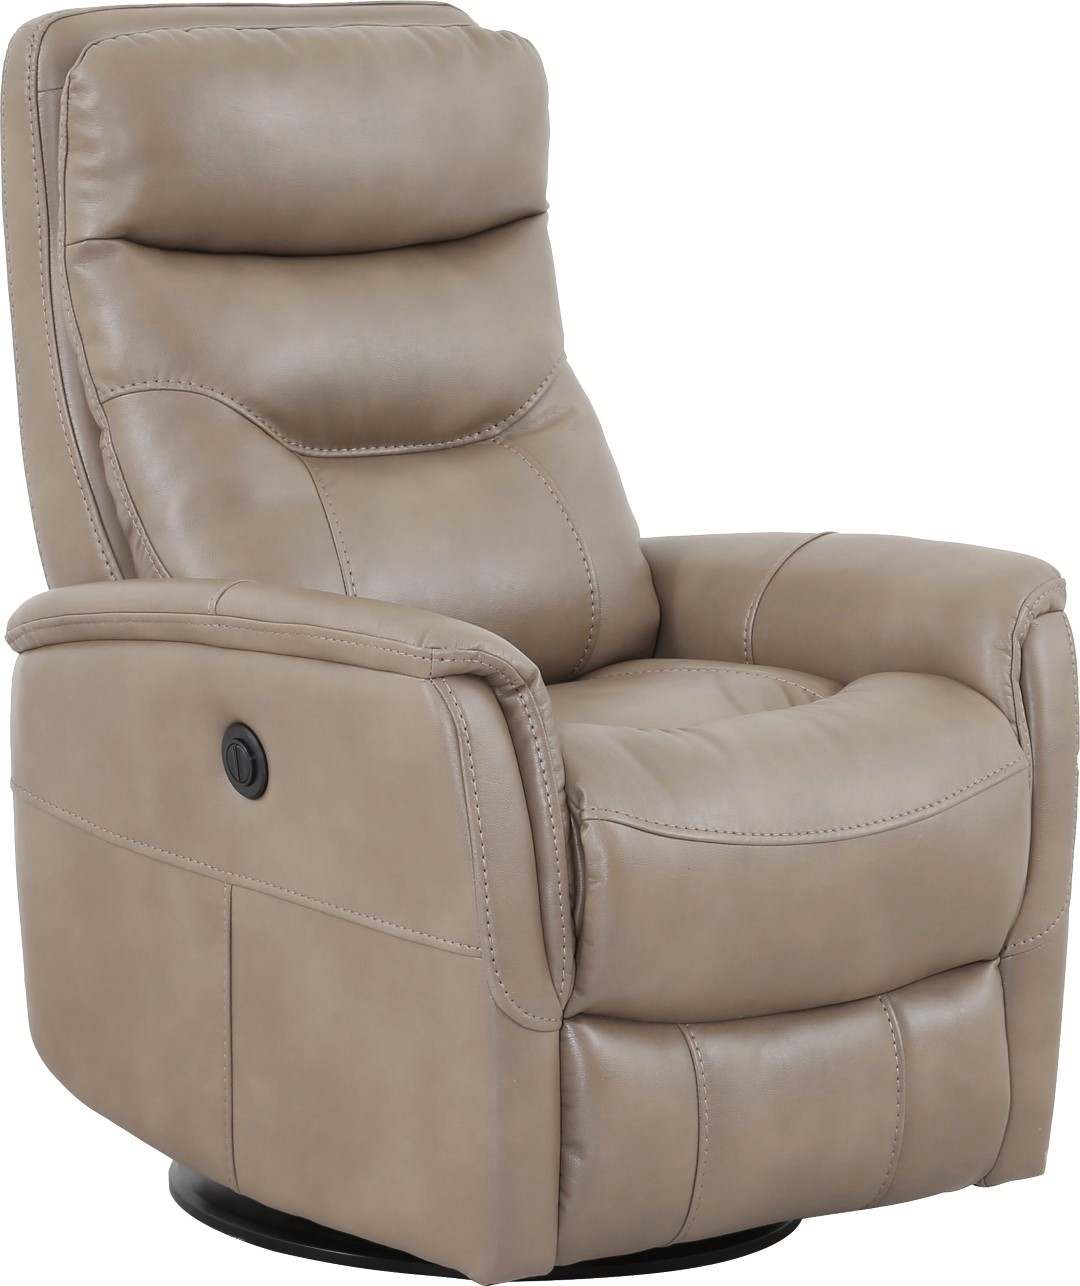 Gemini Linen Swivel Glider Power Recliner With Articulating Headrest In Hercules Oyster Swivel Glider Recliners (View 11 of 25)